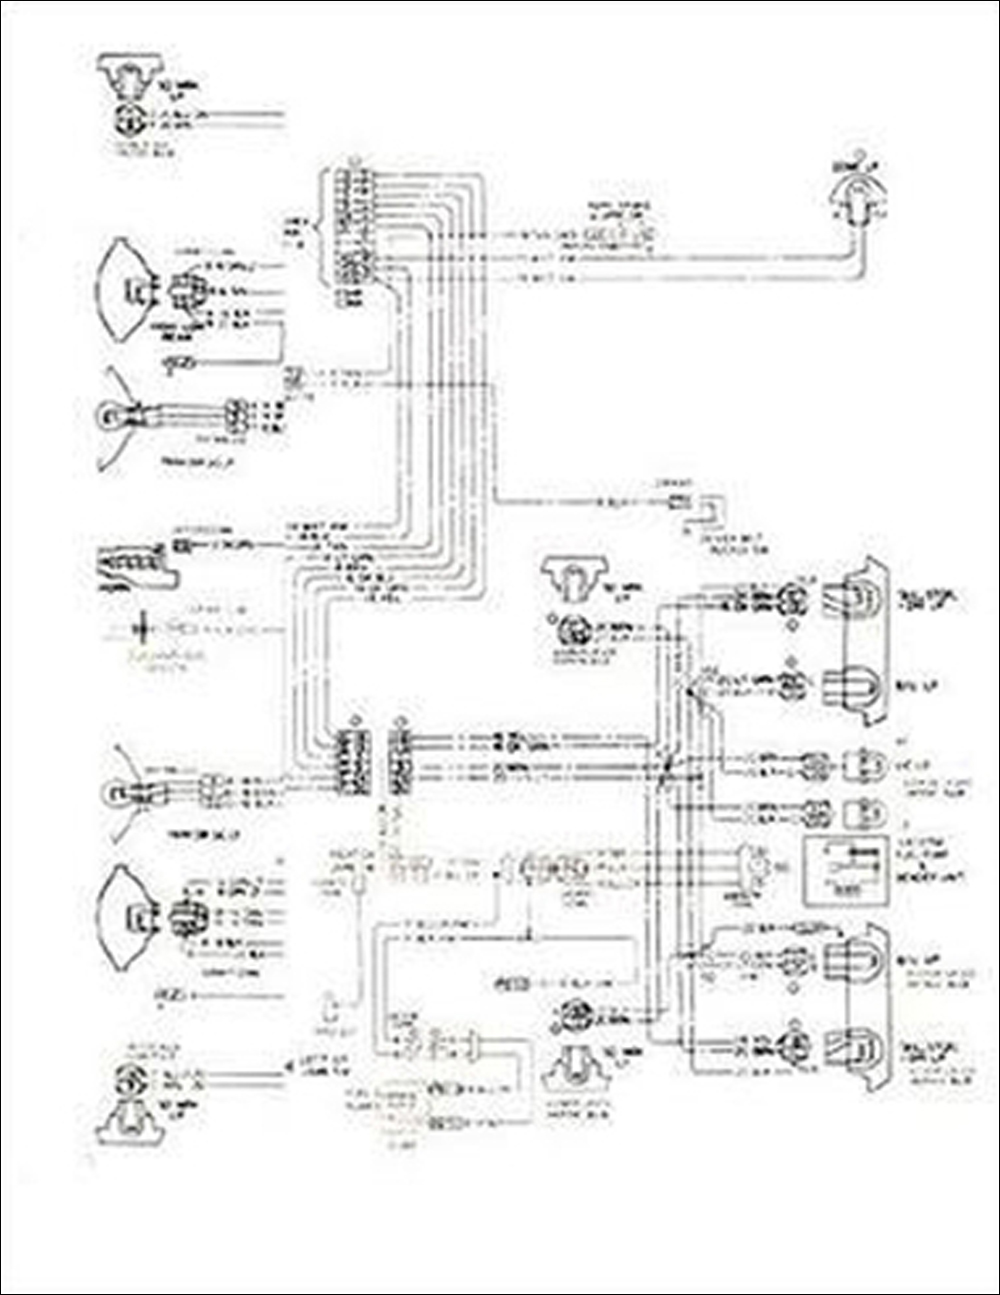 1977 Chevy Monza Foldout Wiring Diagrams Original